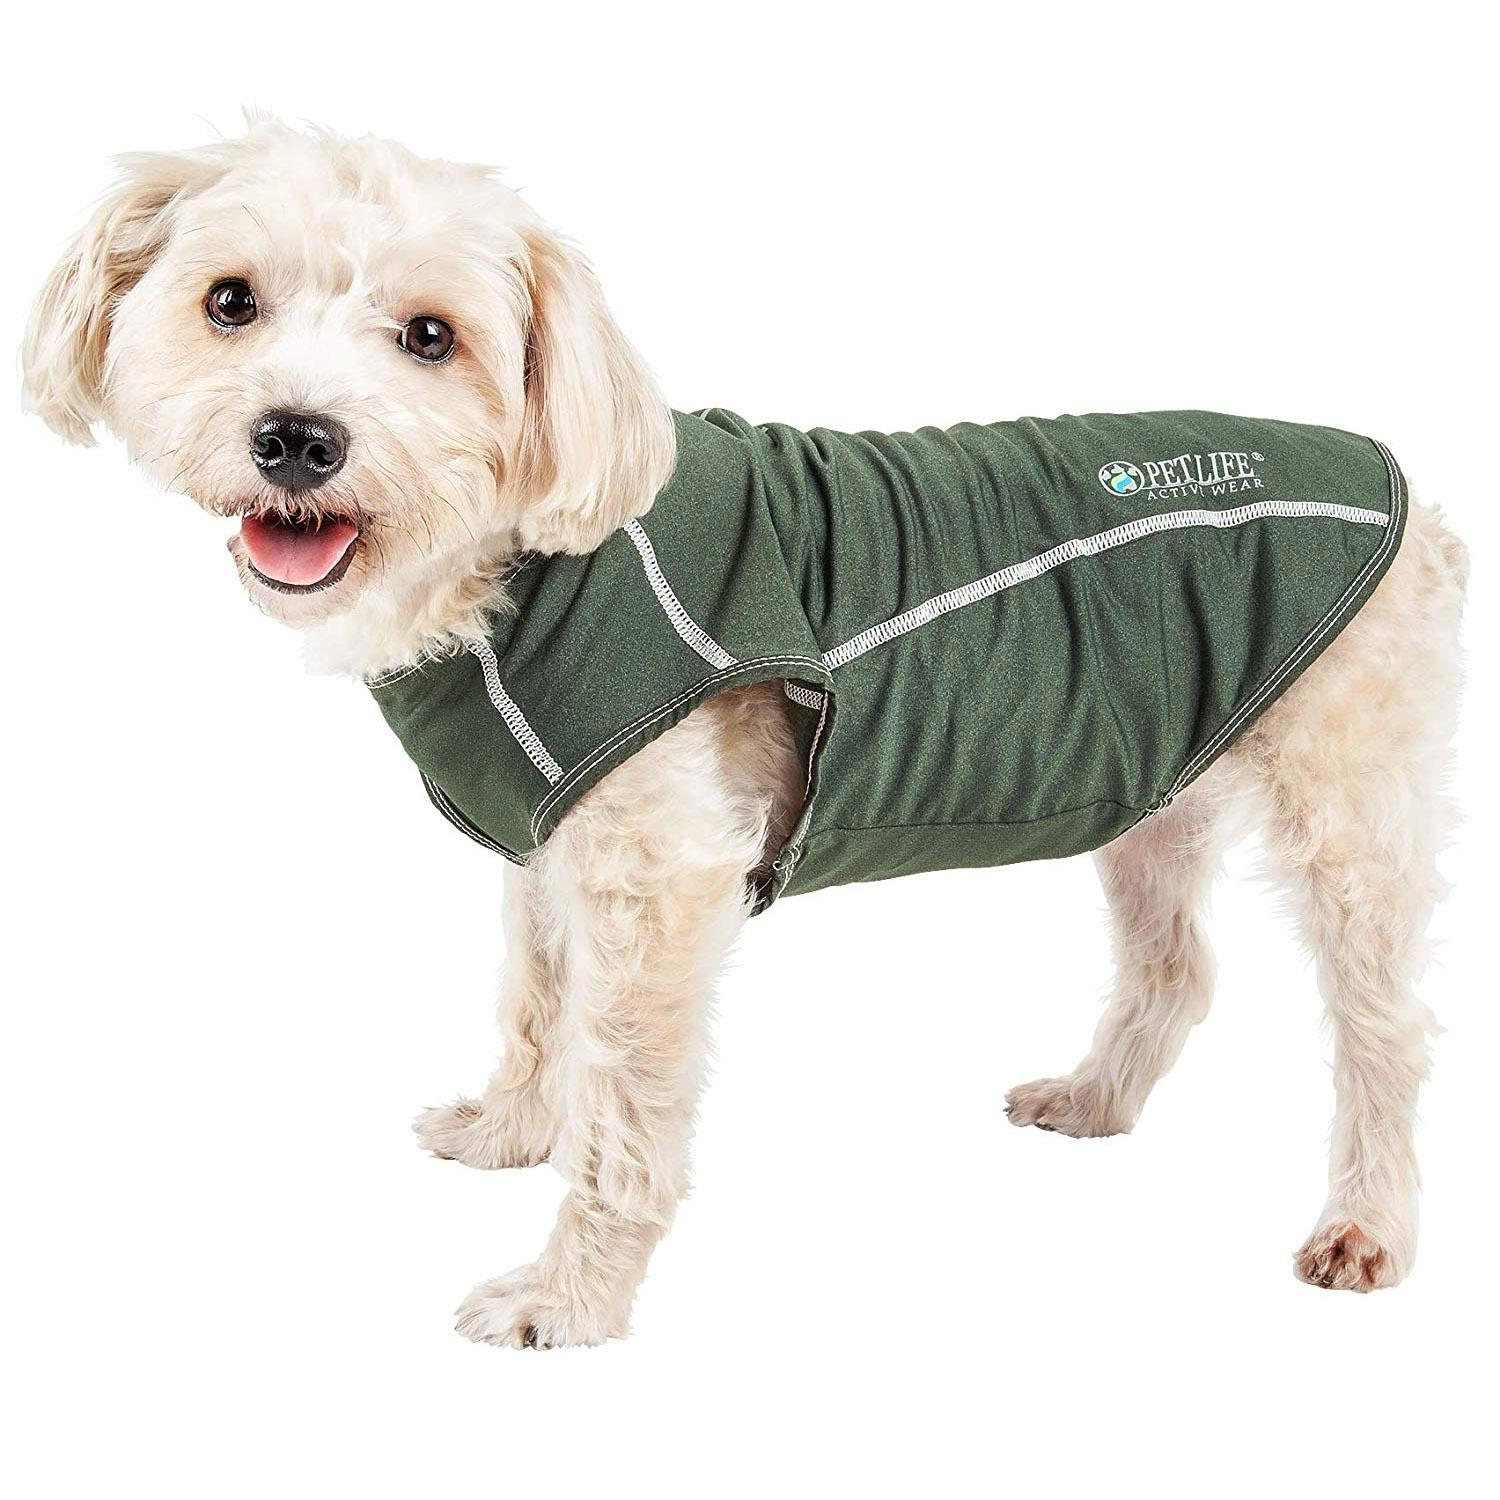 Pet Life ACTIVE 'Racerbark' Performance Dog Tank - Olive Green